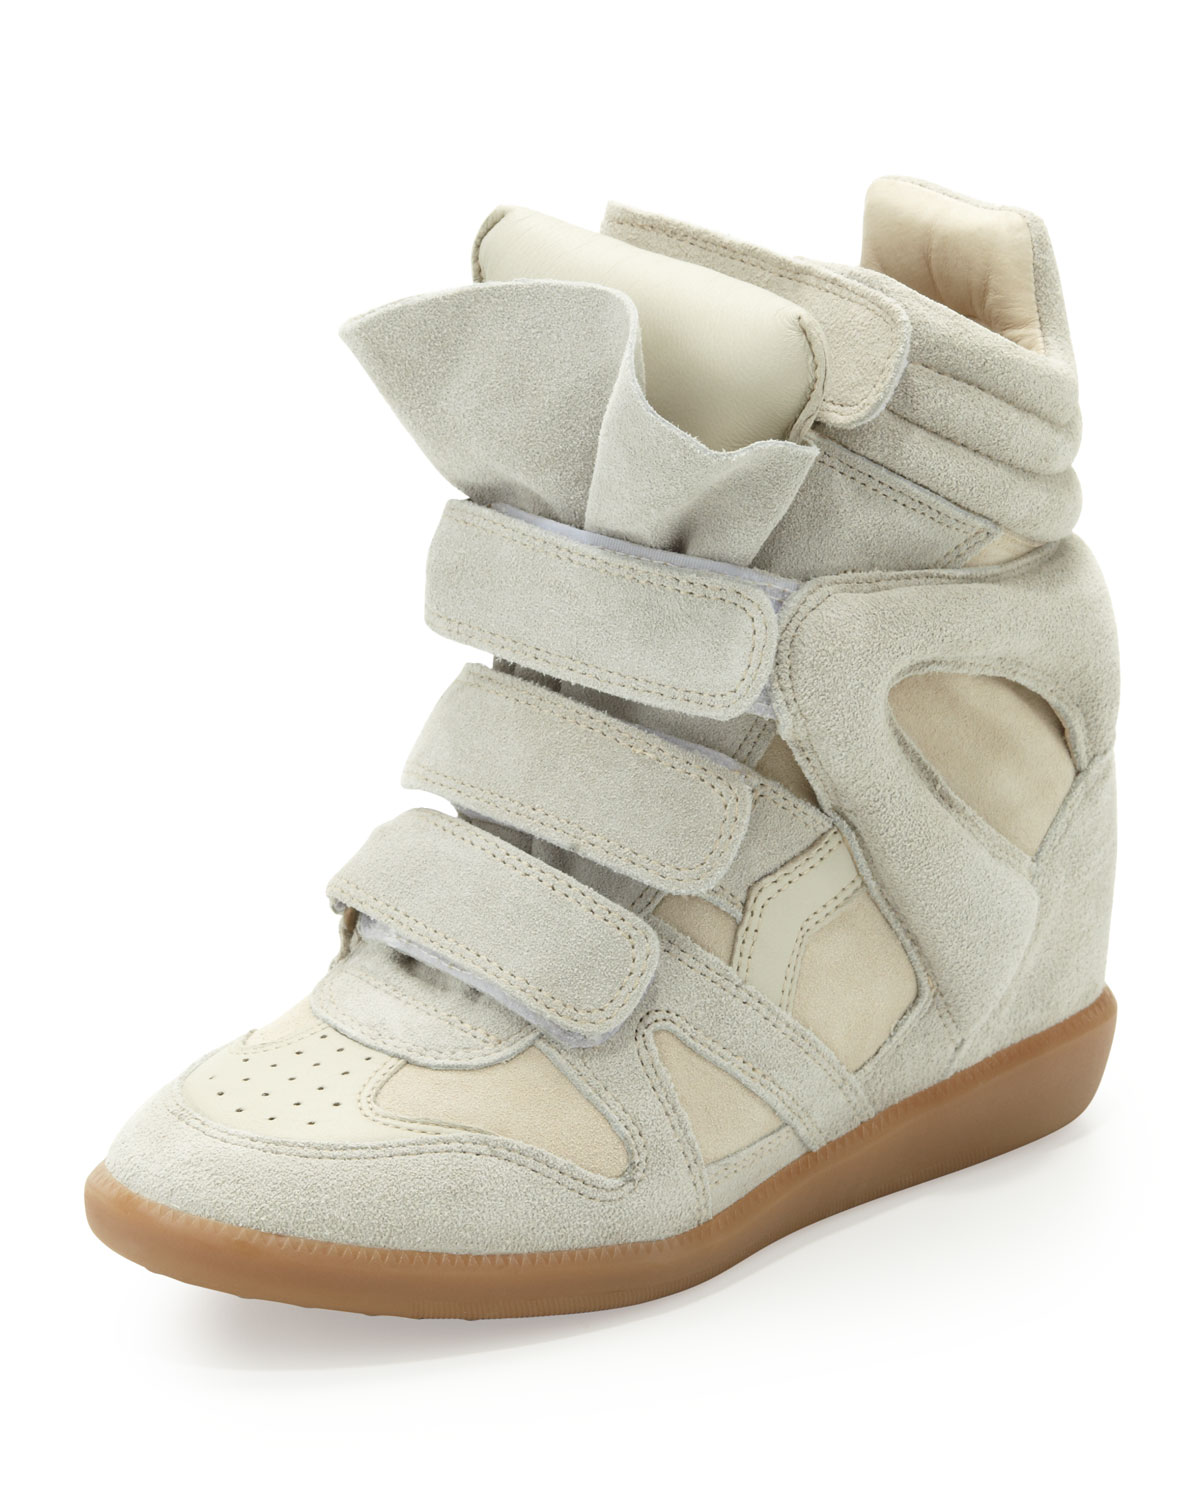 isabel marant beckett suede wedge sneaker cream in white. Black Bedroom Furniture Sets. Home Design Ideas